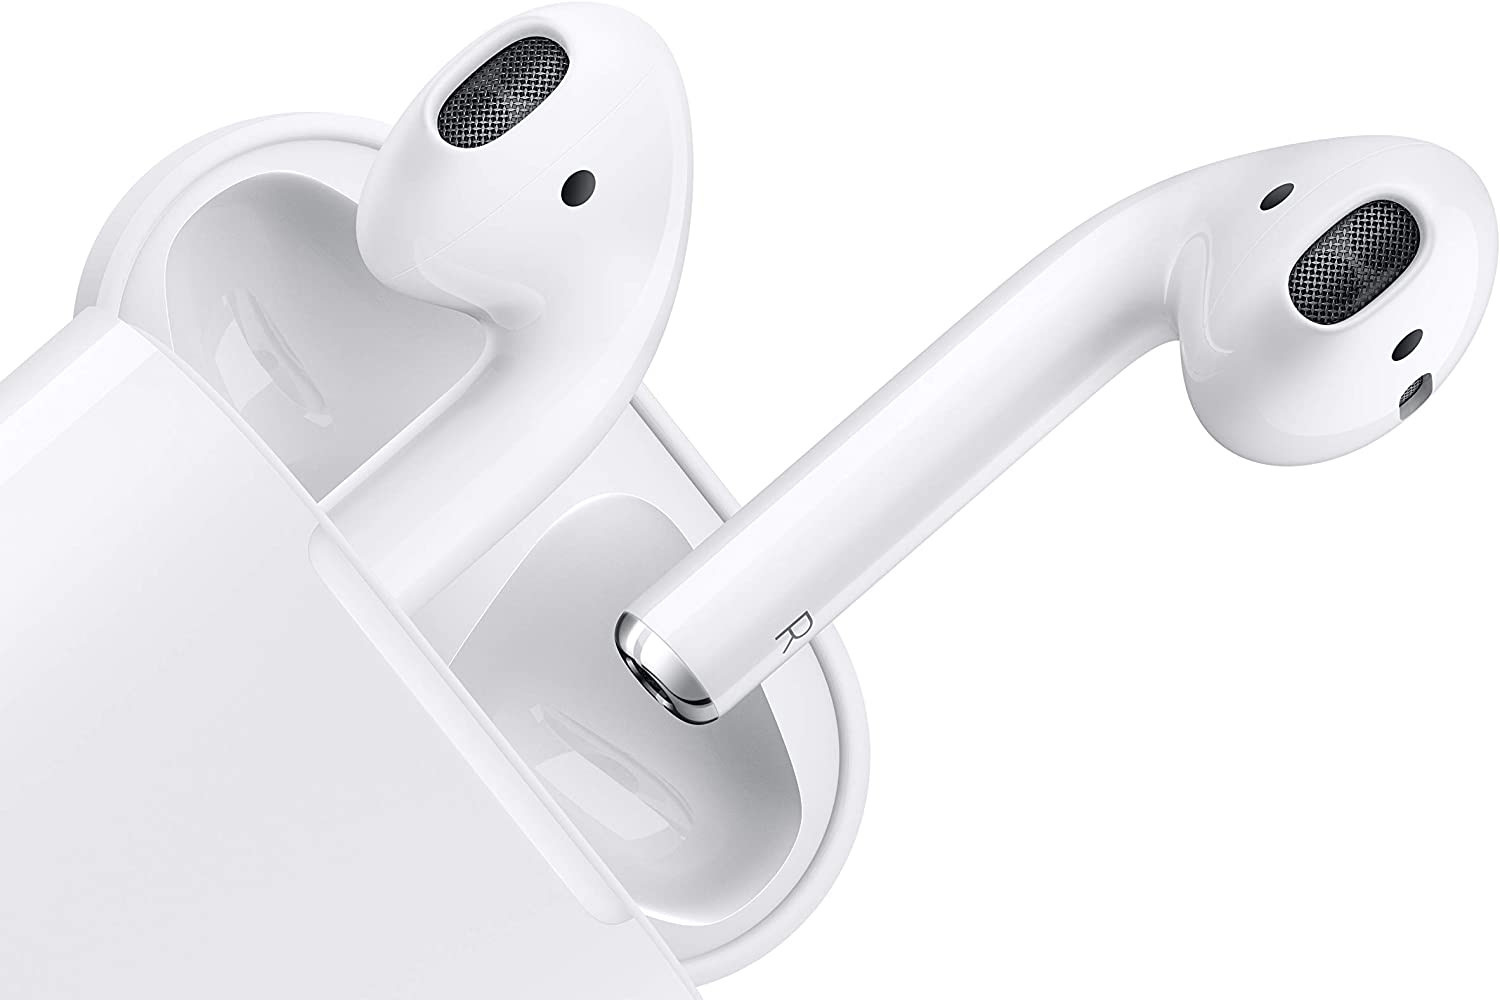 Apple's AirPods are wireless earbuds that connect to your iPhone